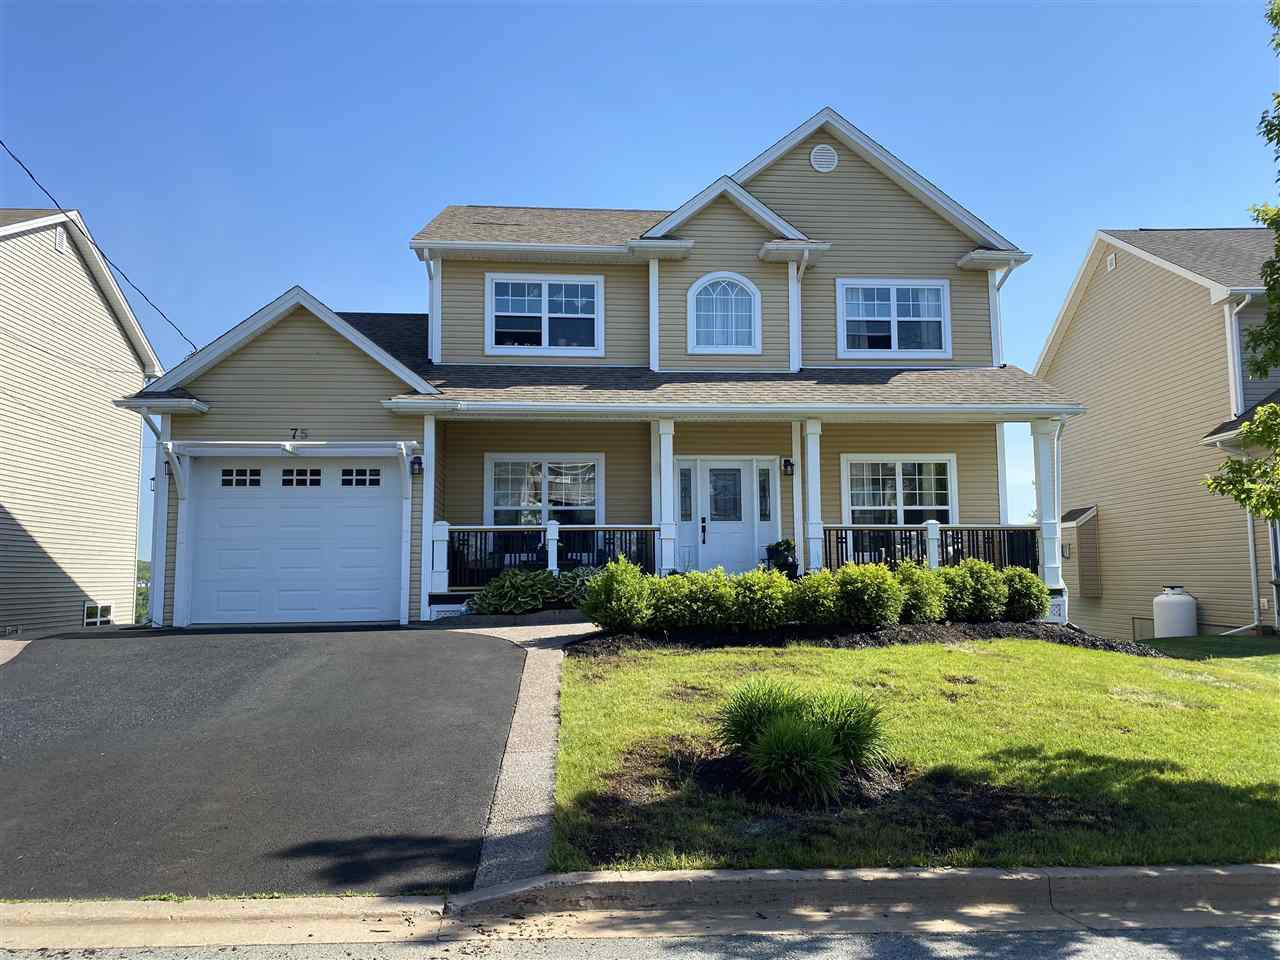 Main Photo: 75 Claudia Crescent in Middle Sackville: 25-Sackville Residential for sale (Halifax-Dartmouth)  : MLS®# 202011908